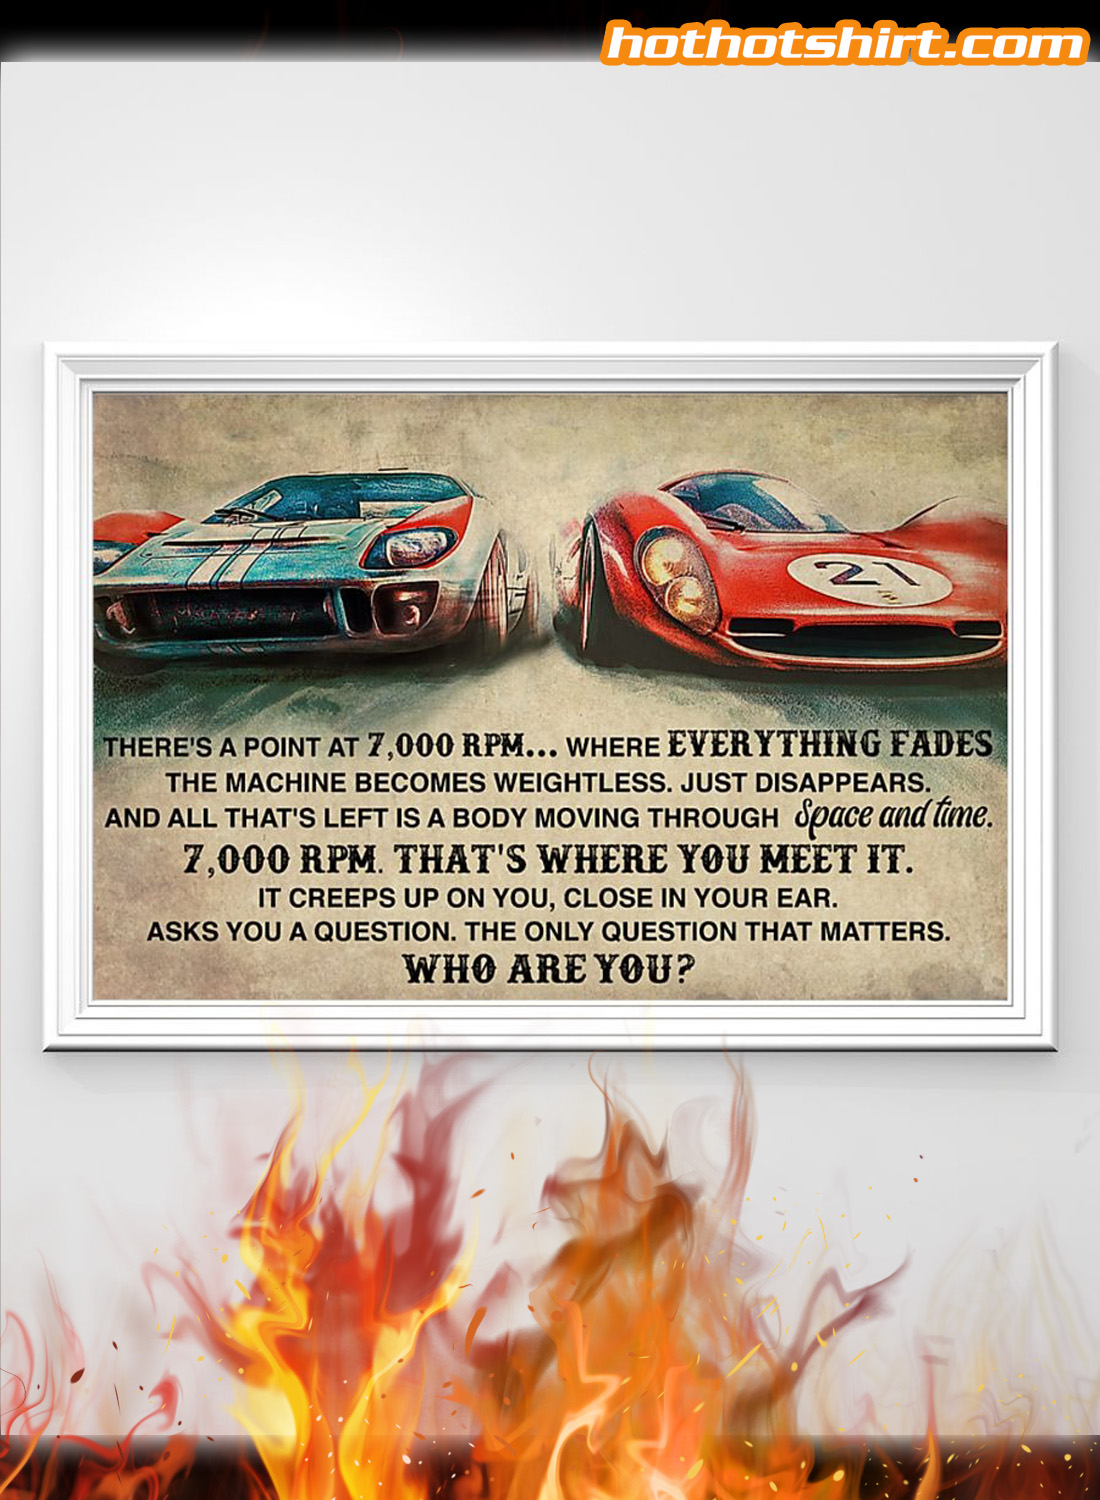 Car racing there's a point at 7000 RPM poster 1